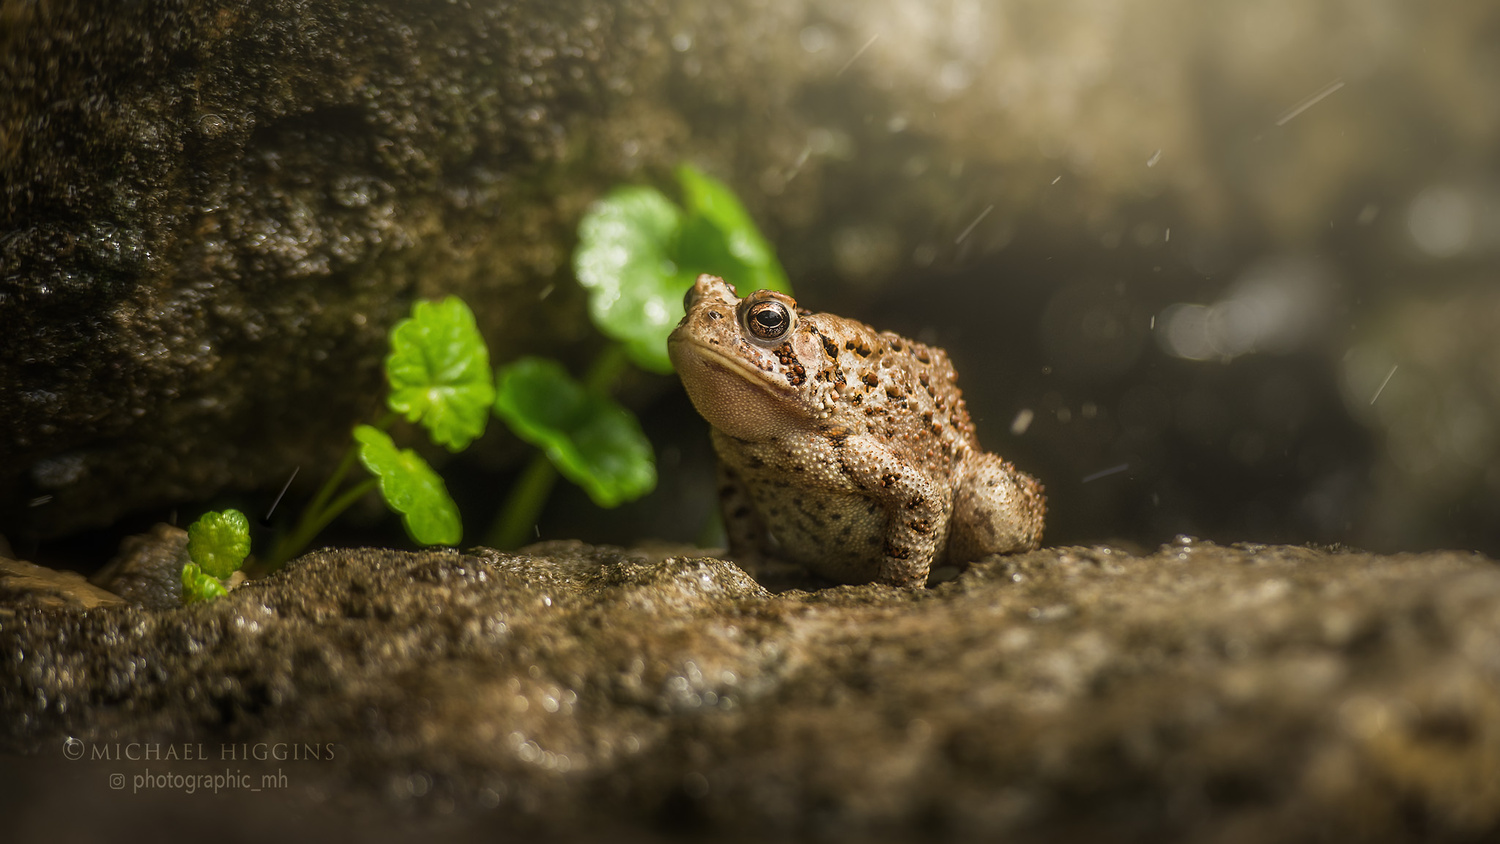 Toad, puffed up. by Michael Higgins